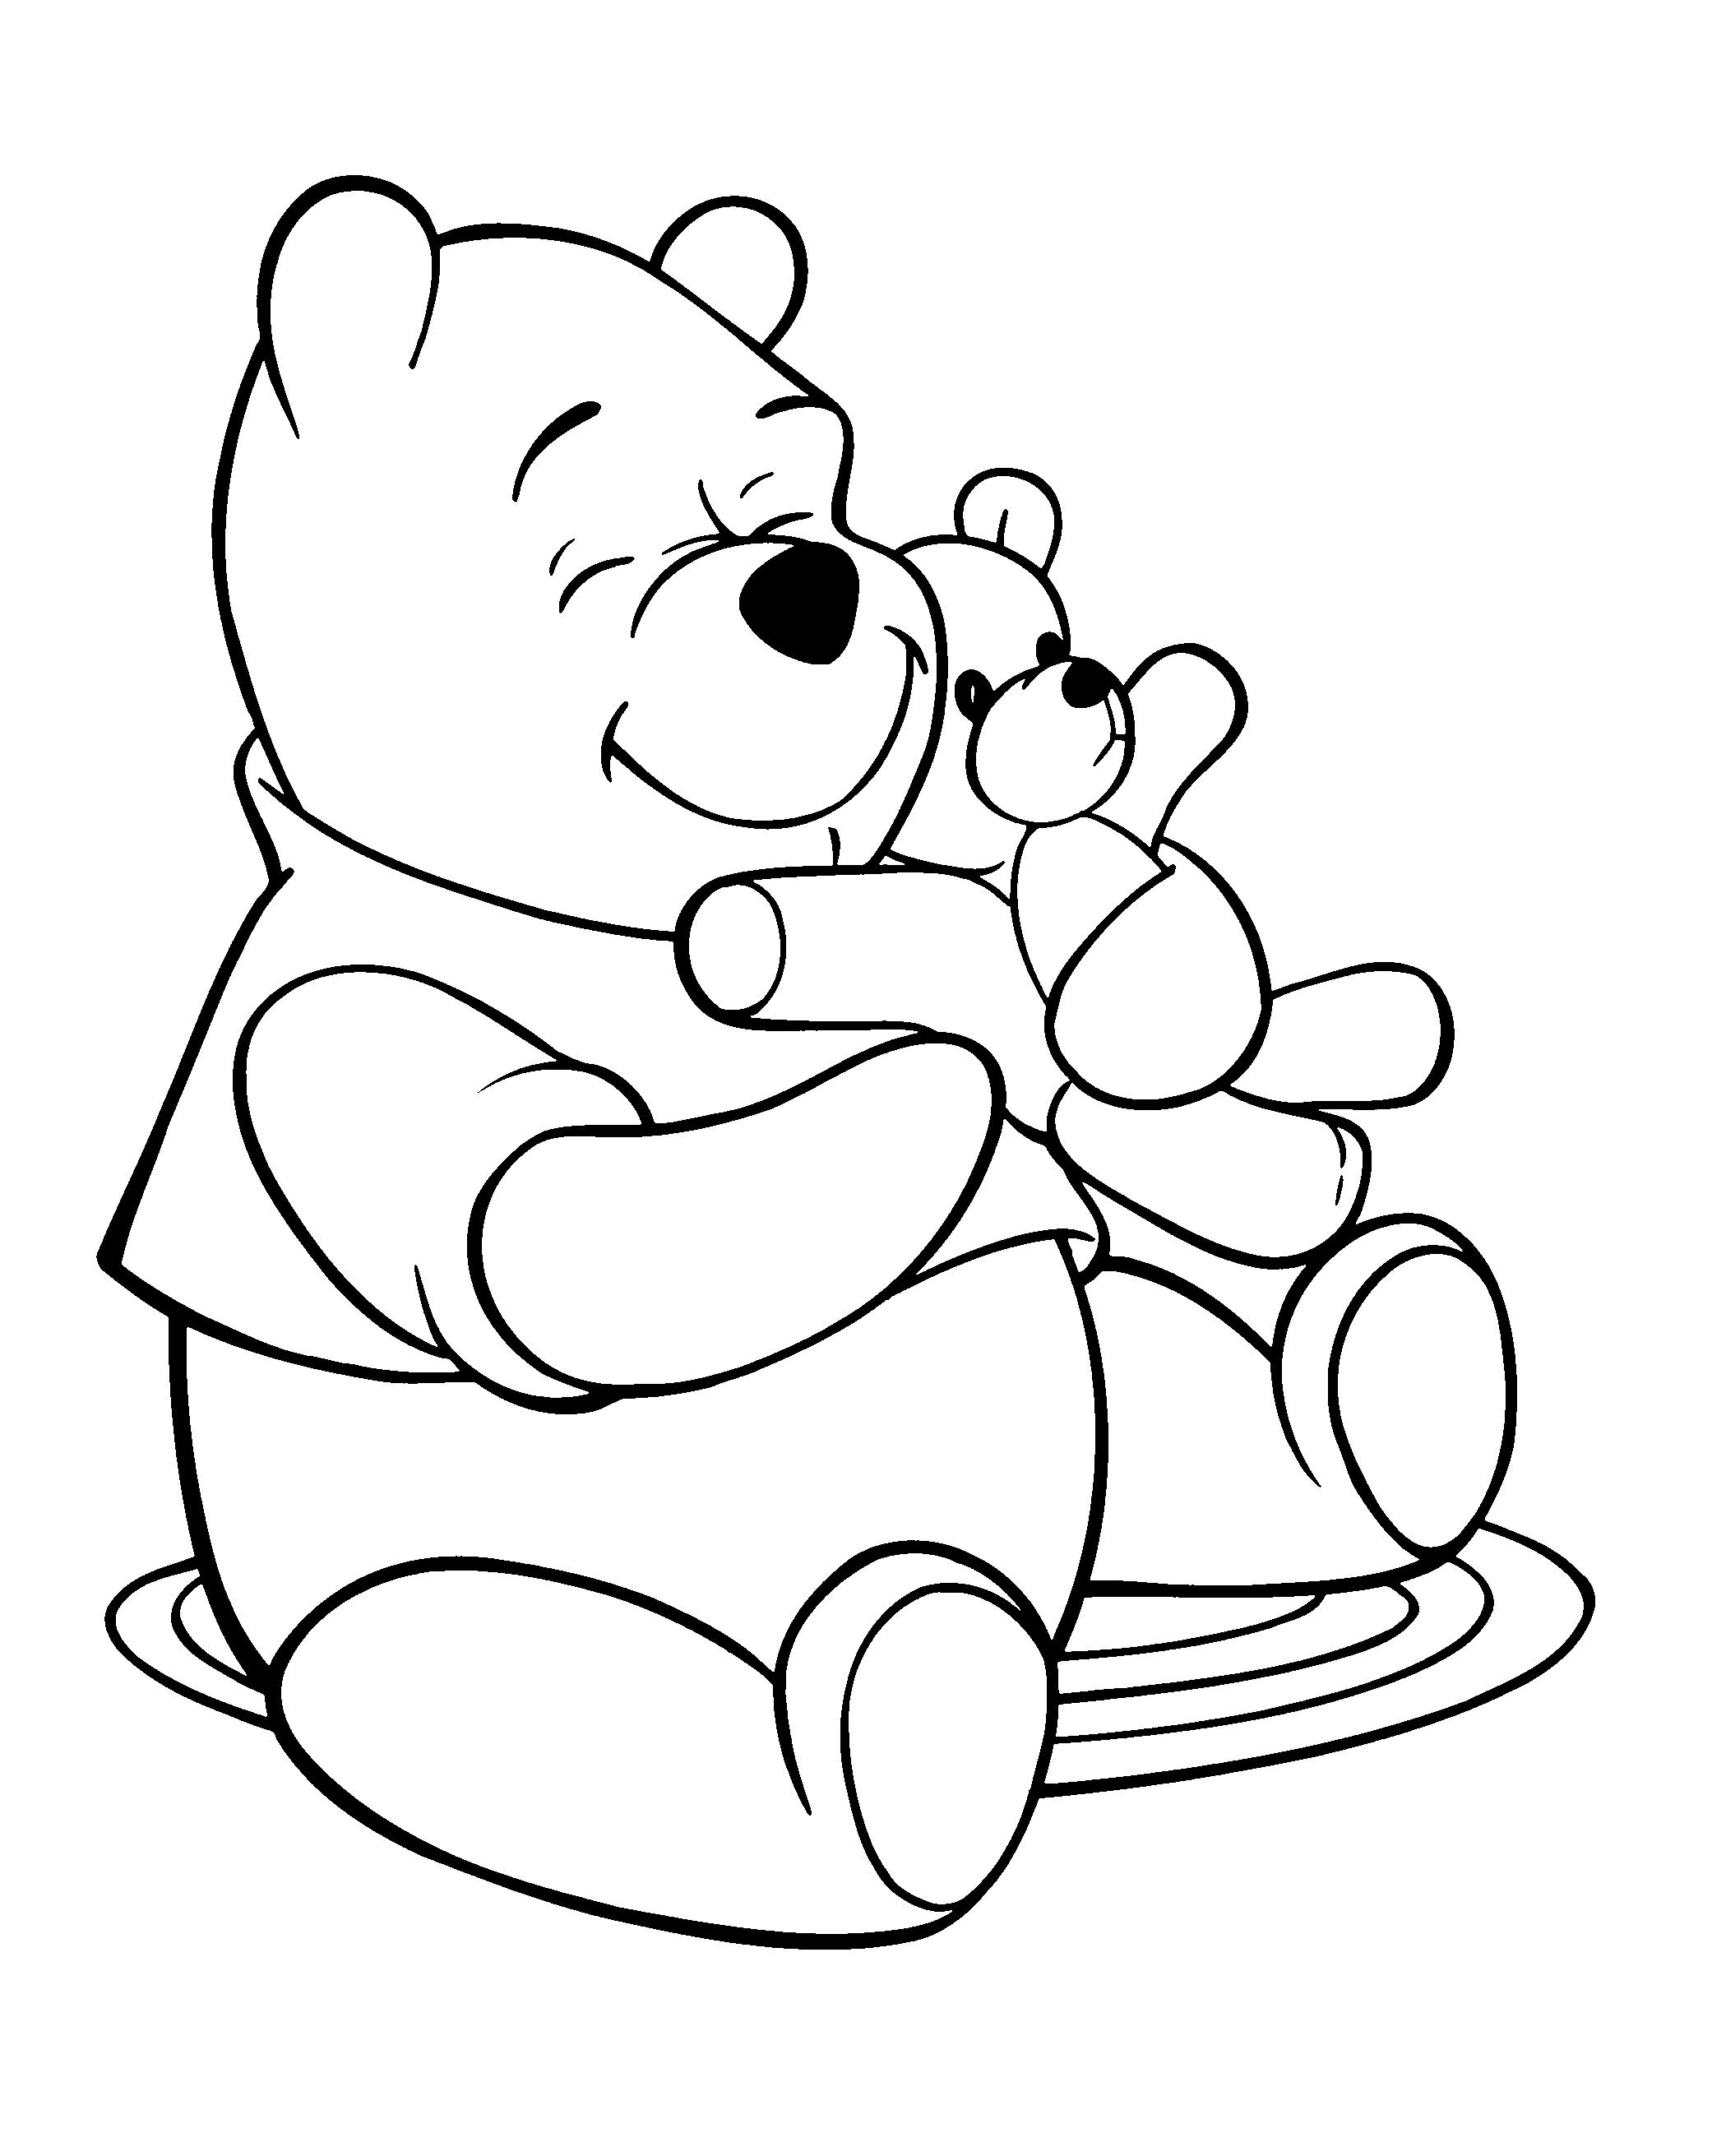 Winnie The Poo Color Pages Ausmalbilder, Zeichnungen